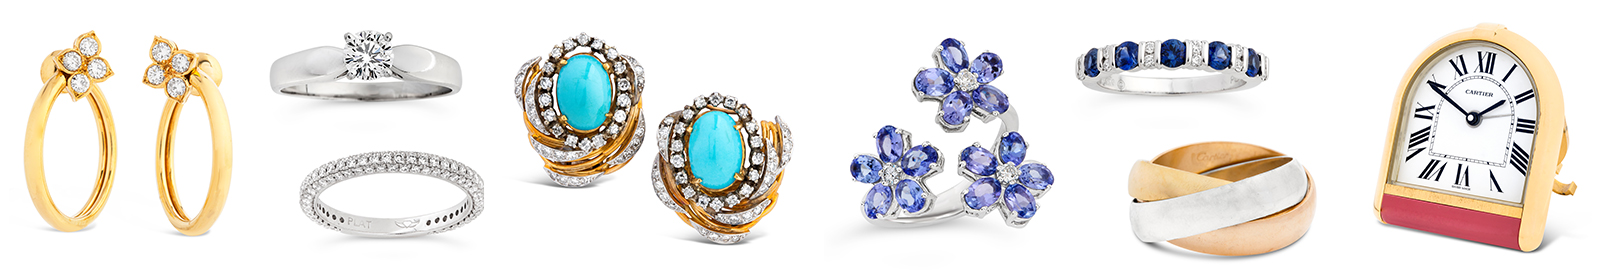 Online Jewels Auction